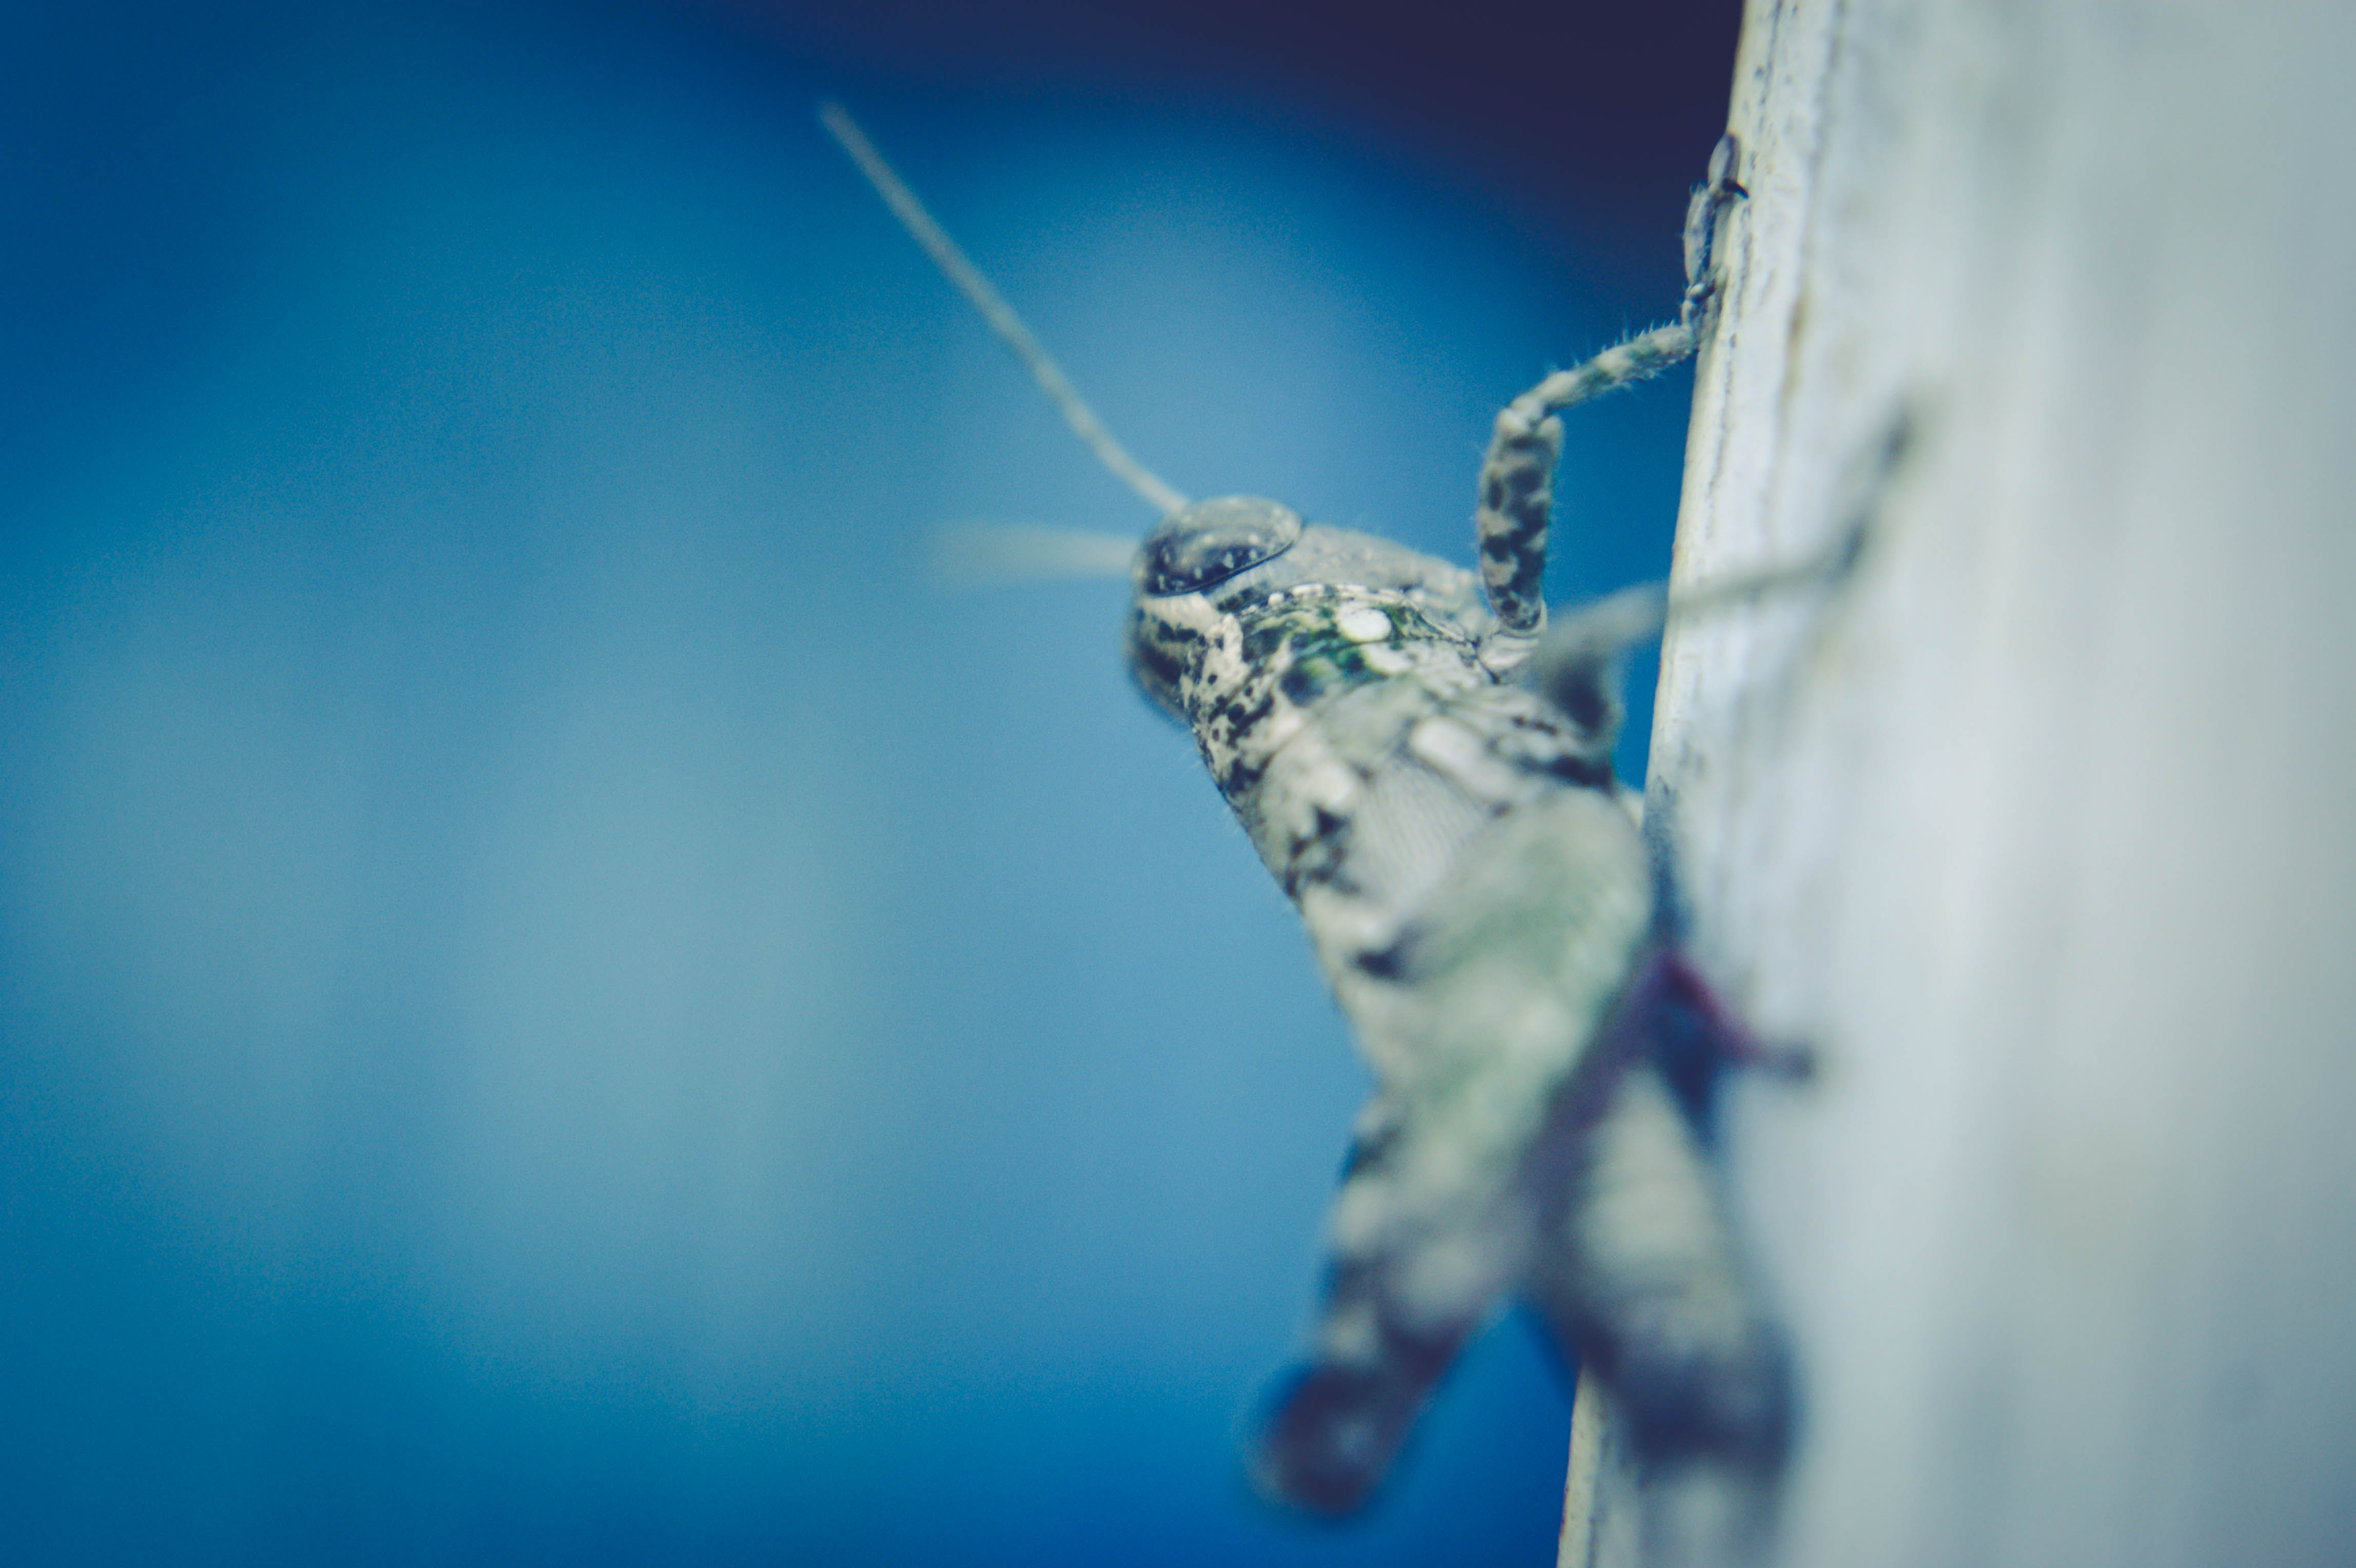 Selective Focus Photography of Grasshopper on Surface